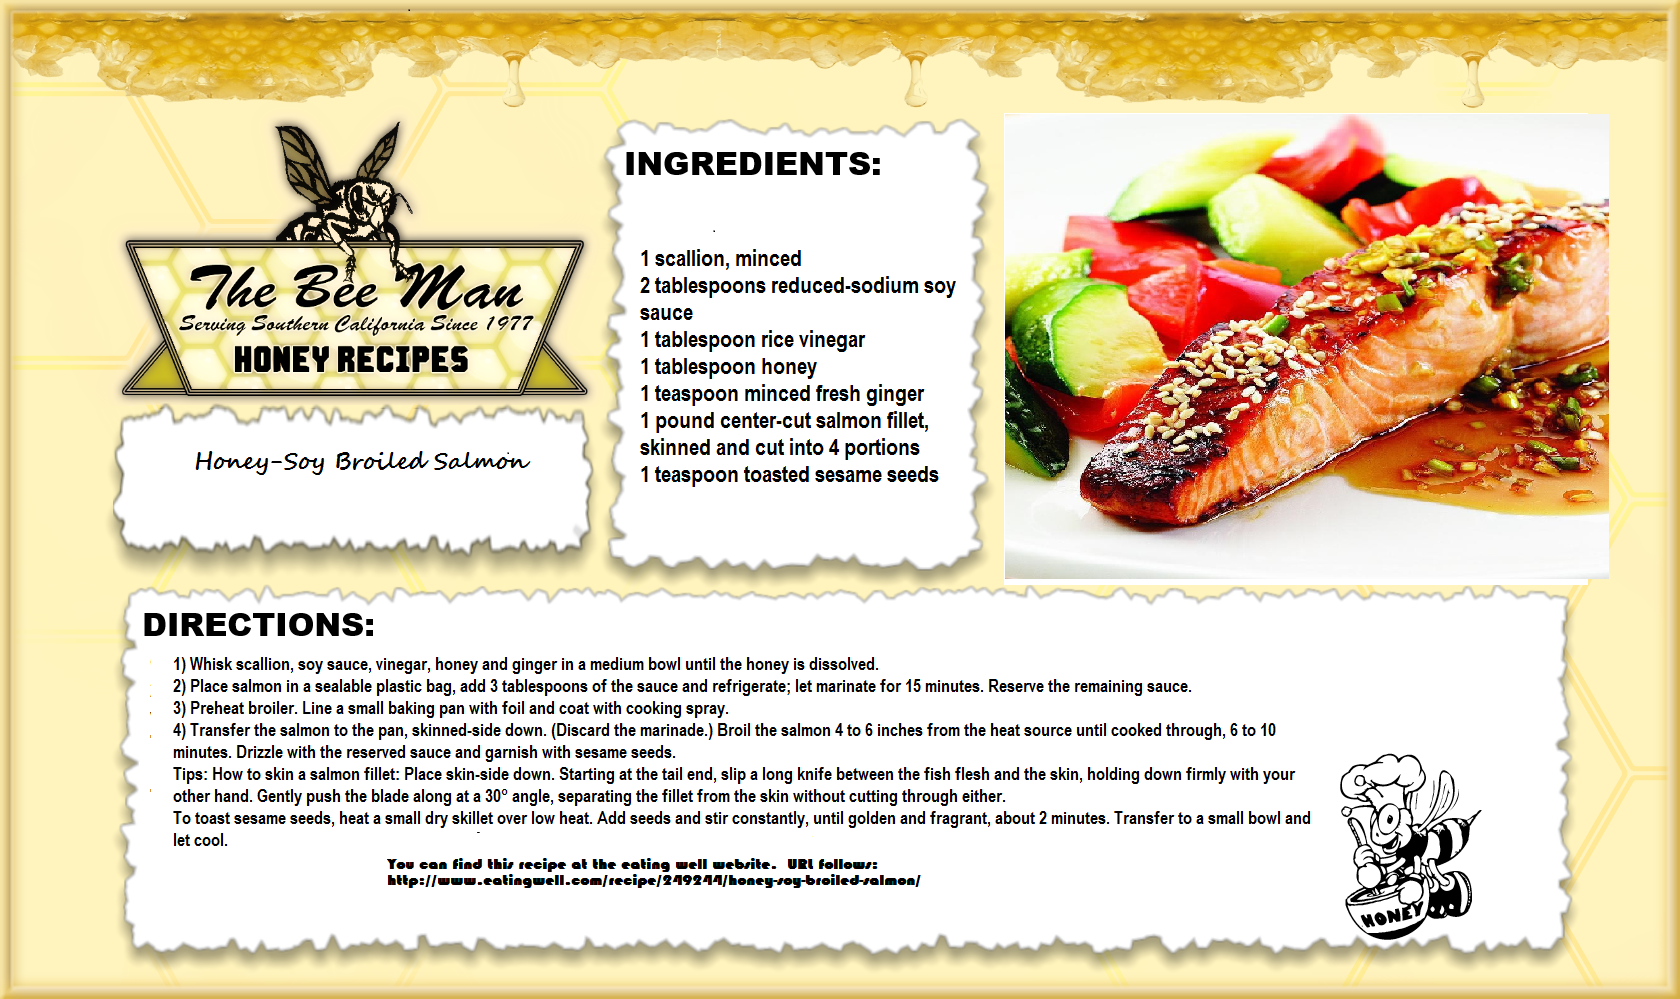 Happy Aloha Friday! Today's healthy honey recipe is Honey-Soy Broiled Salmon. (one of our favorites!) Serves 4